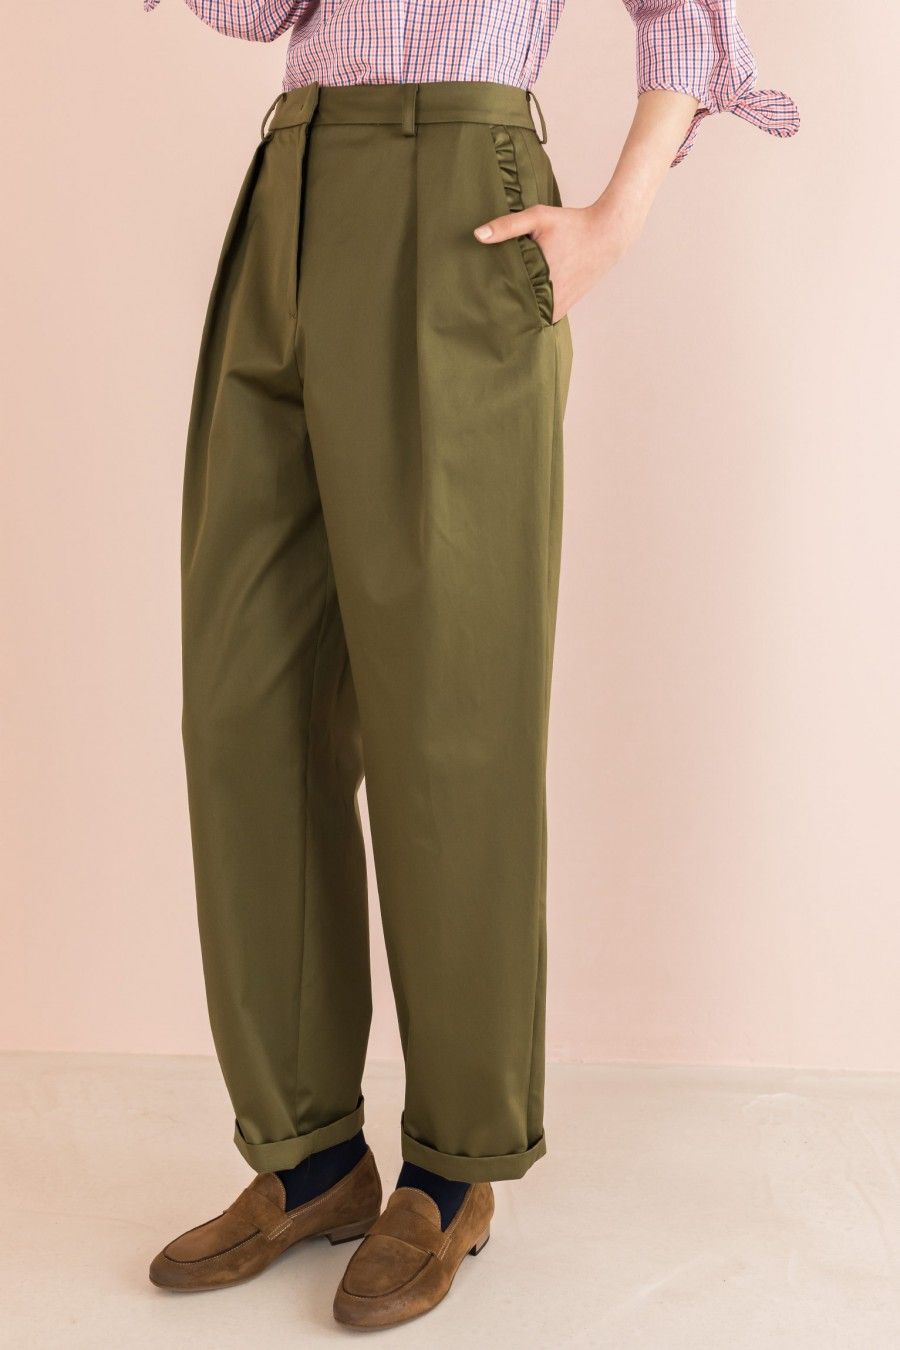 military egg-shaped trousers with ruffles on the pockets